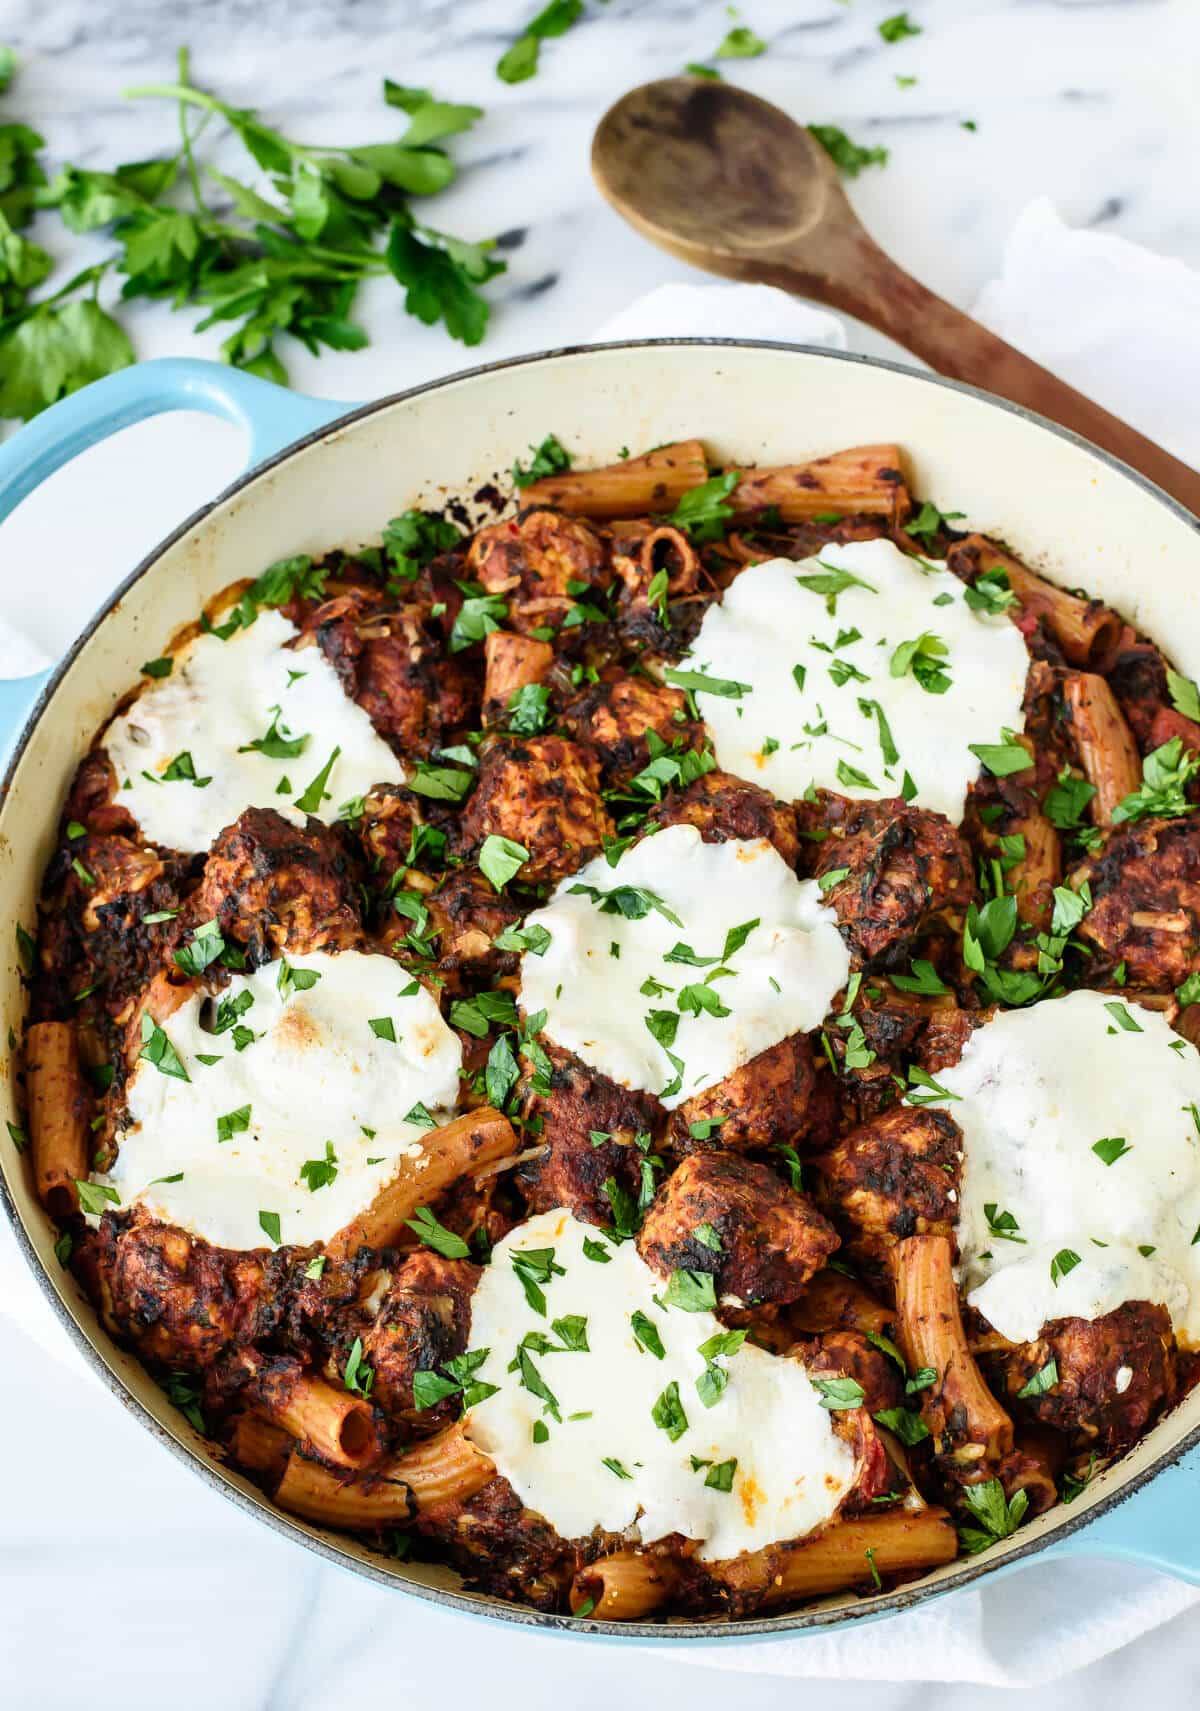 Mozzarella Meatball Casserole. Juicy turkey meatballs with whole wheat pasta and lots of gooey mozzarella cheese. Your entire family will love this recipe and it's healthy too!